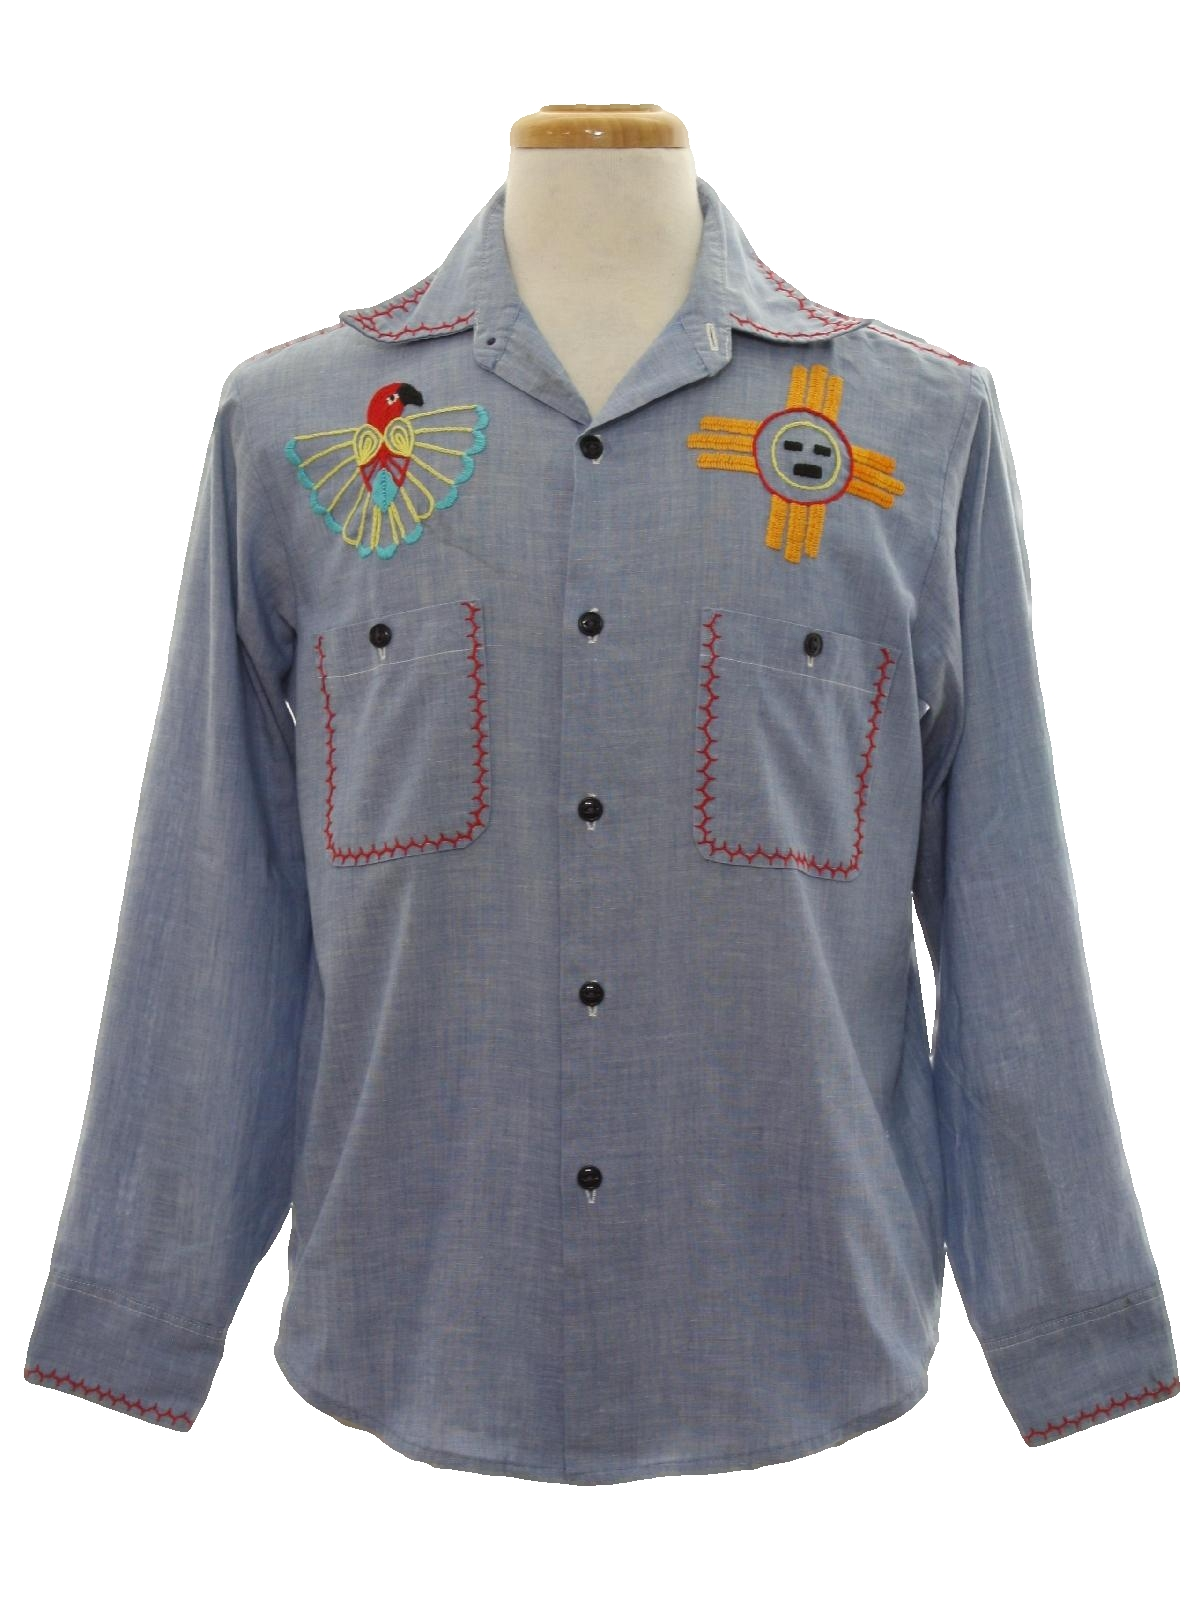 Vintage 1970 39 S Hippie Shirt 70s No Label Mens Chambray